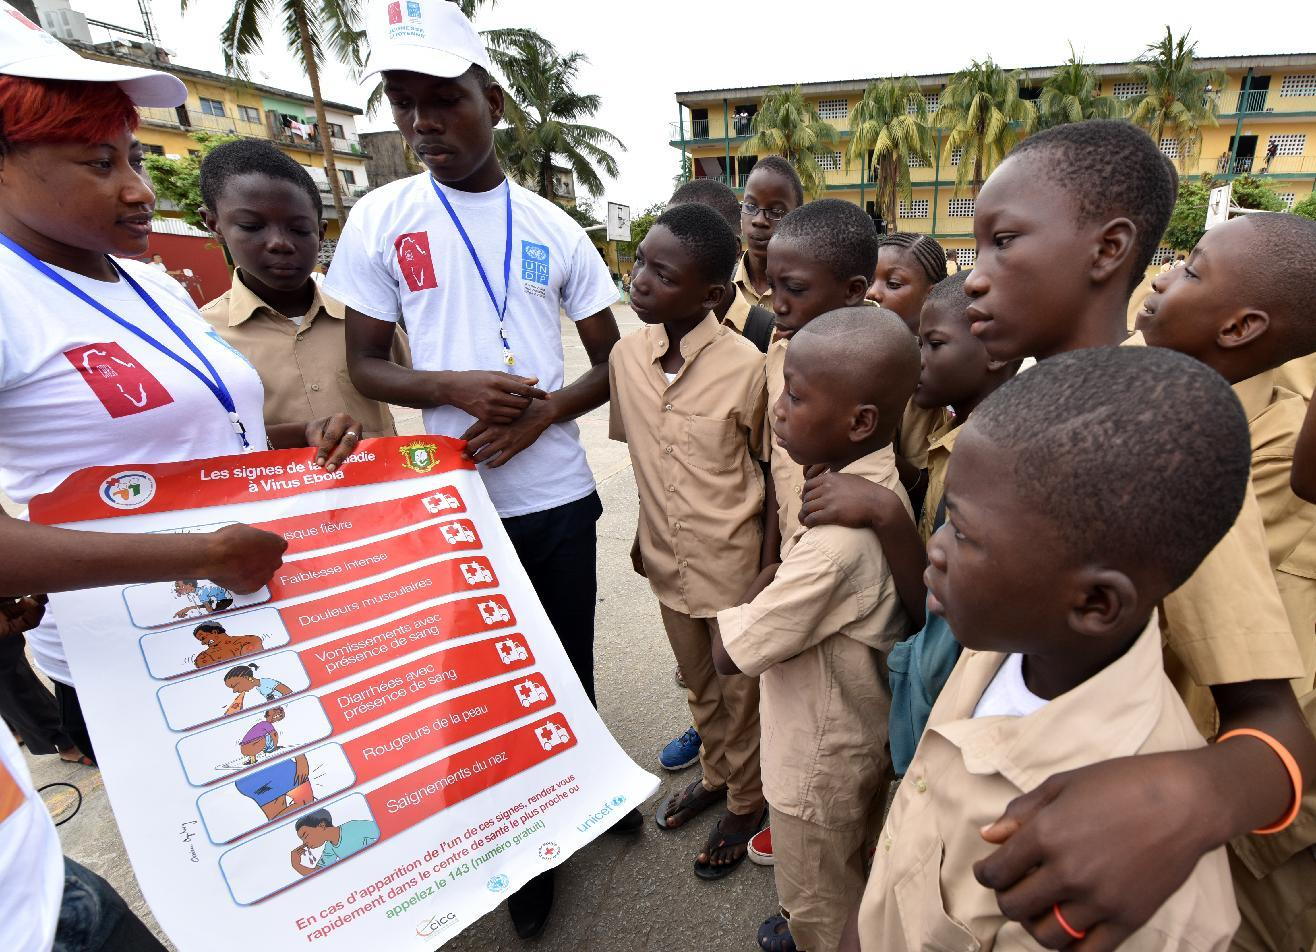 Volunteers wearing t-shirts of the United Nations Development Programme show a placard to raise awareness about the symptoms of the Ebola virus to students in Abidjan, on September 15, 2014 (AFP Photo/Sia Kambou)